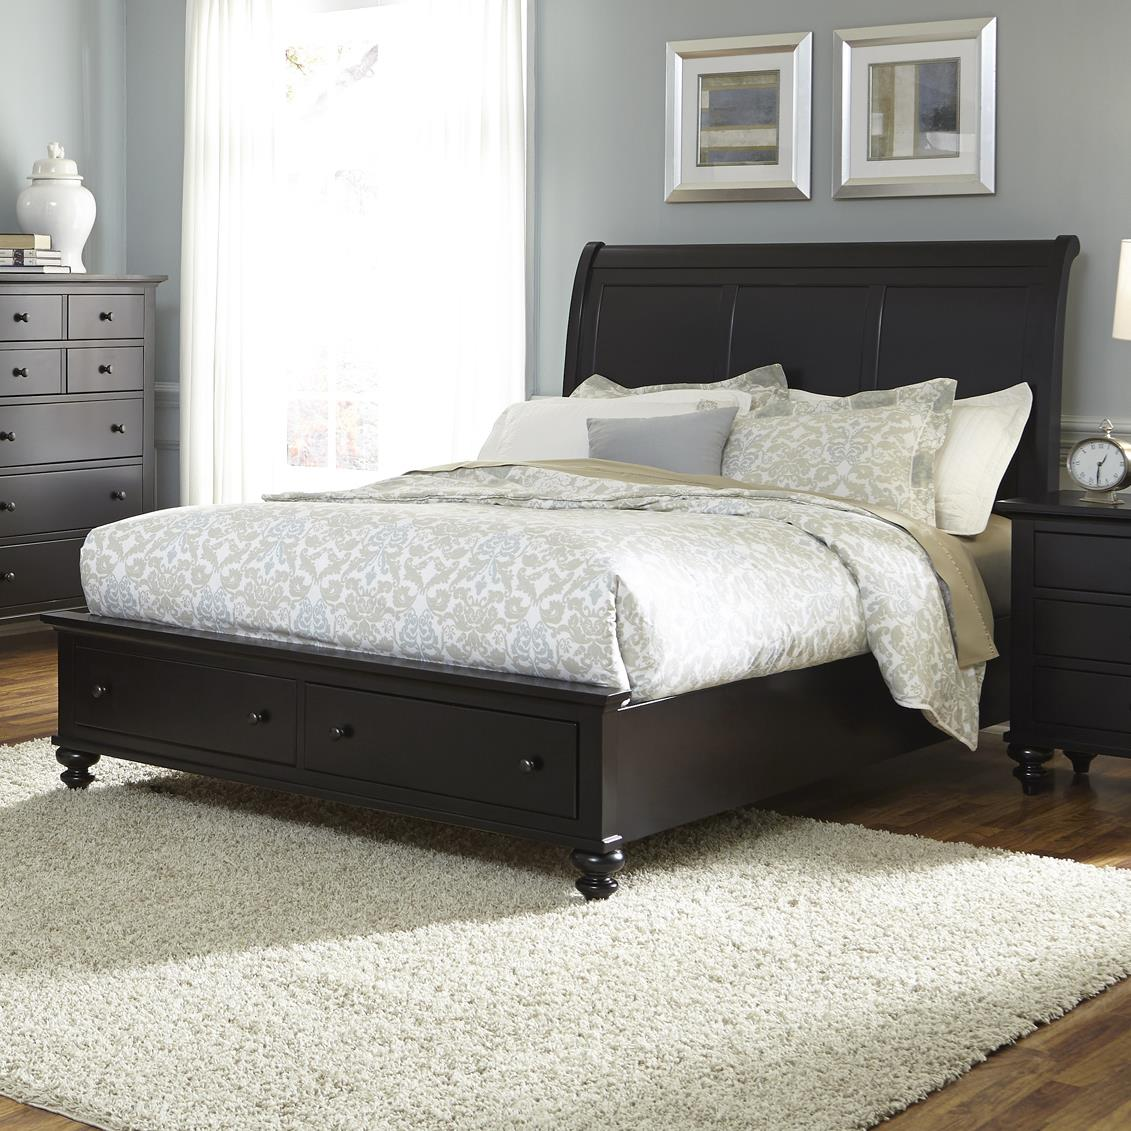 Liberty Furniture Hamilton III King Sleigh Bed with Storage Footboard - Item Number: 441-BR-KSB